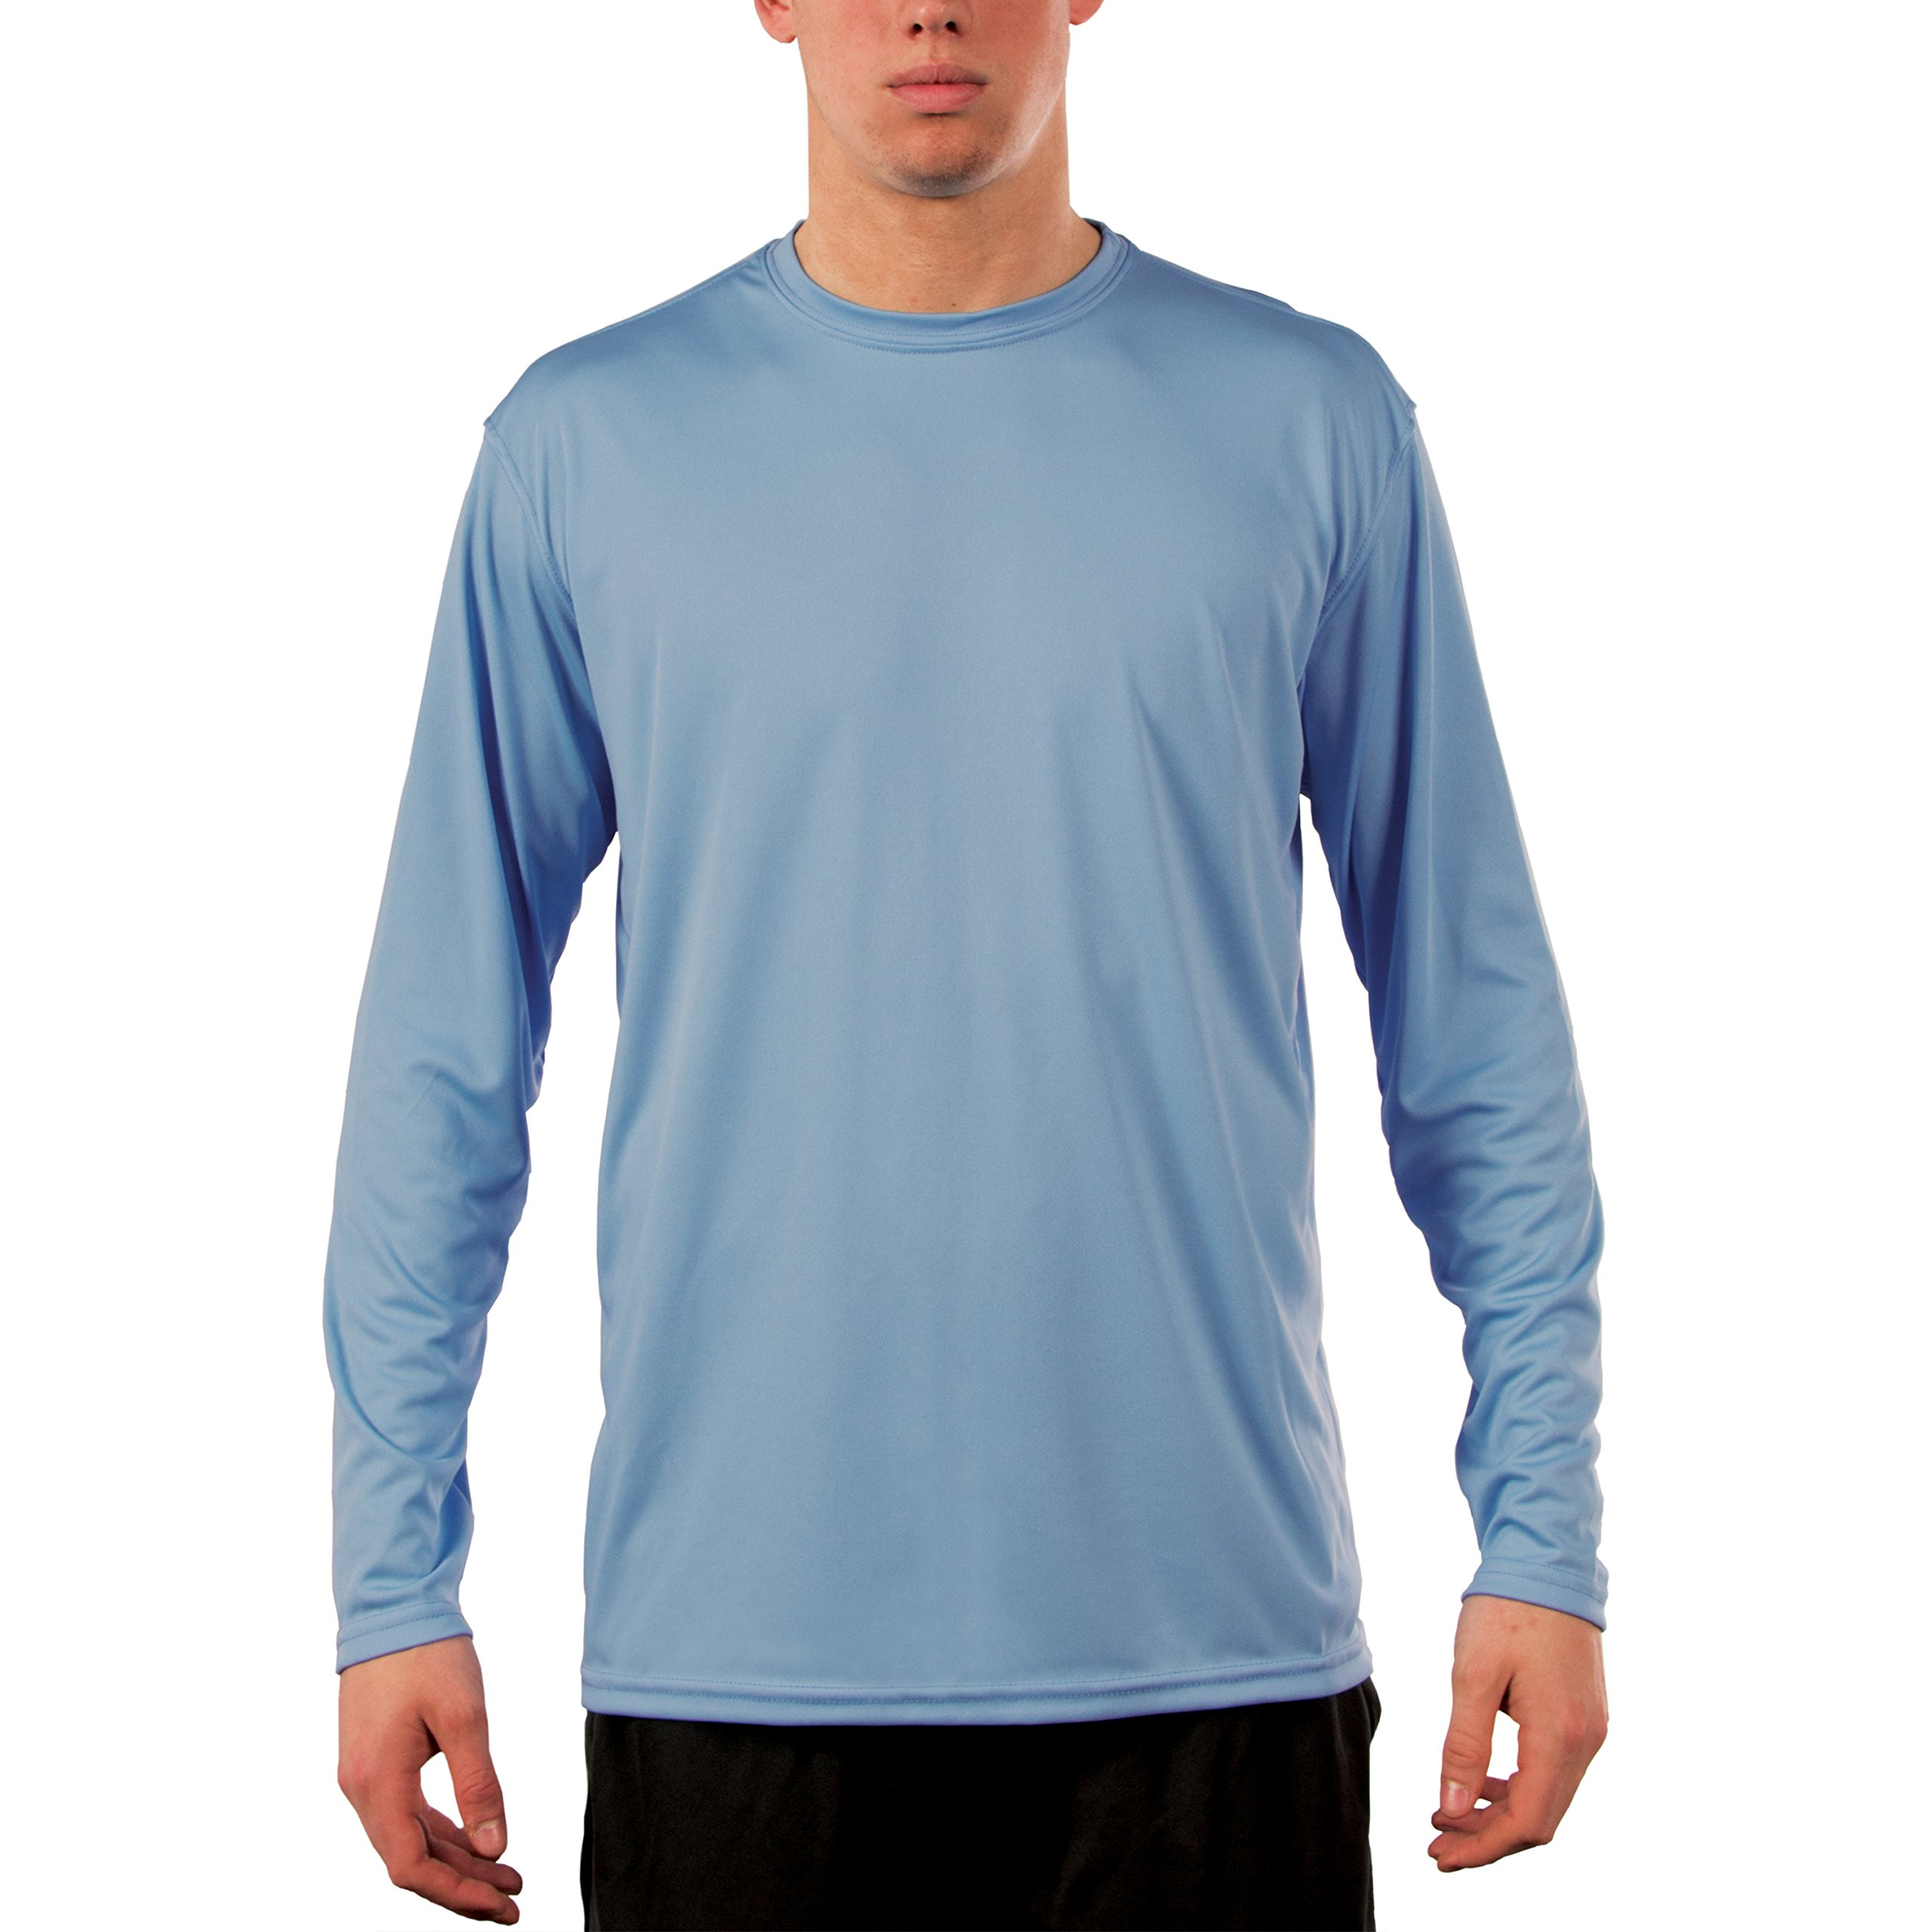 Vapor Apparel Men's UPF 50+ UV Sun Protection Performance Long Sleeve T-shirt Large Columbia Blue